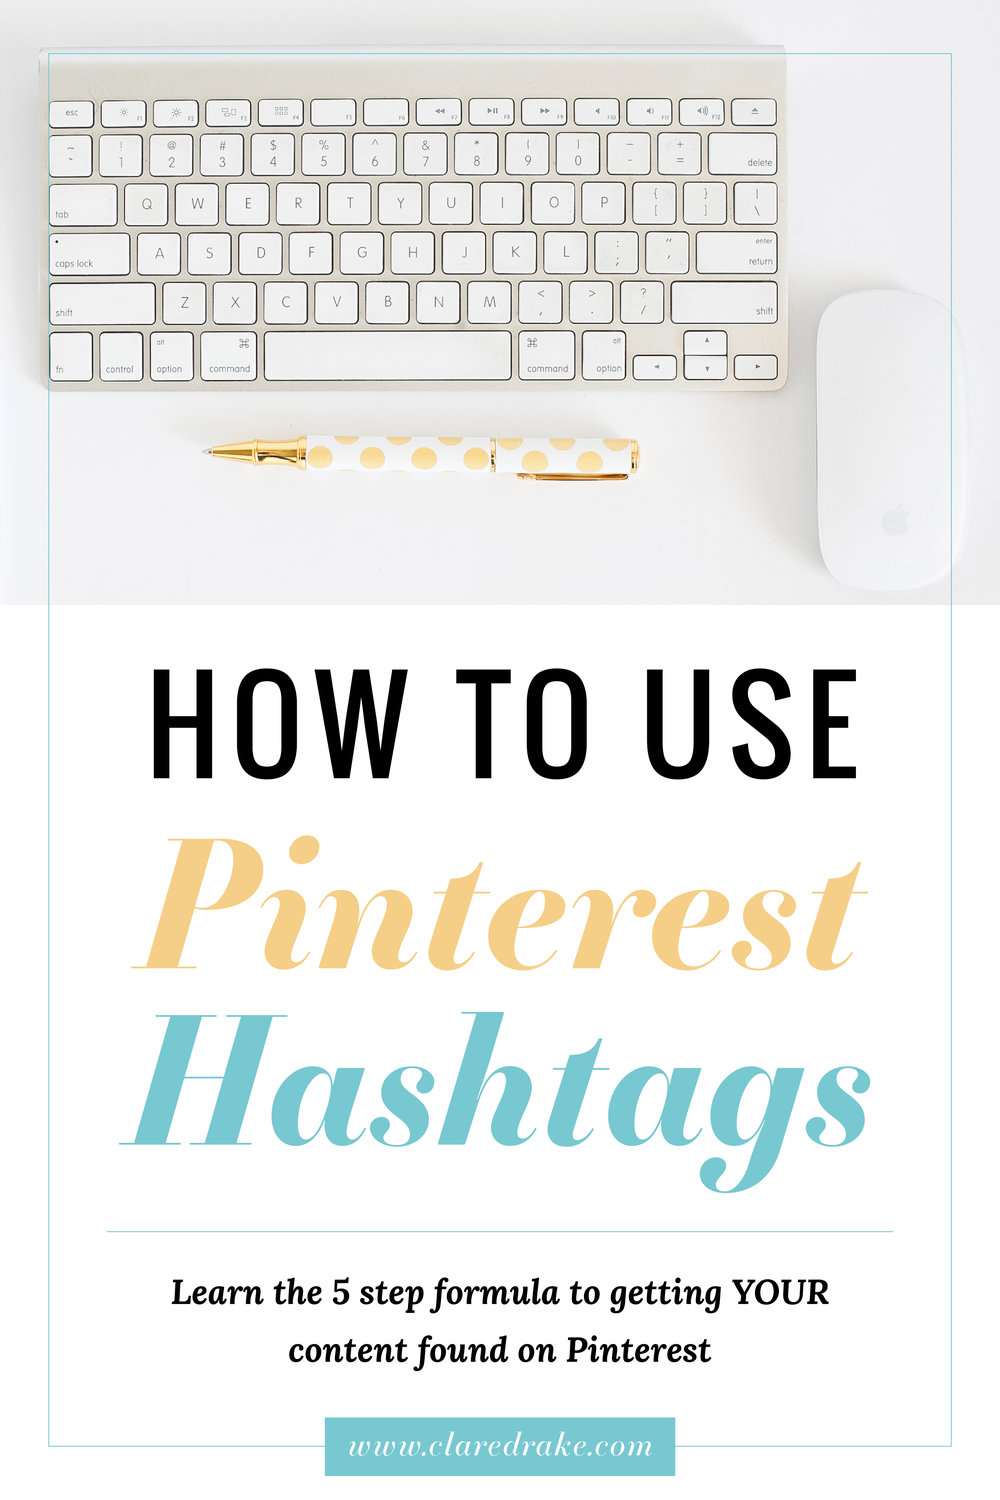 How to Use Pinterest Hashtags